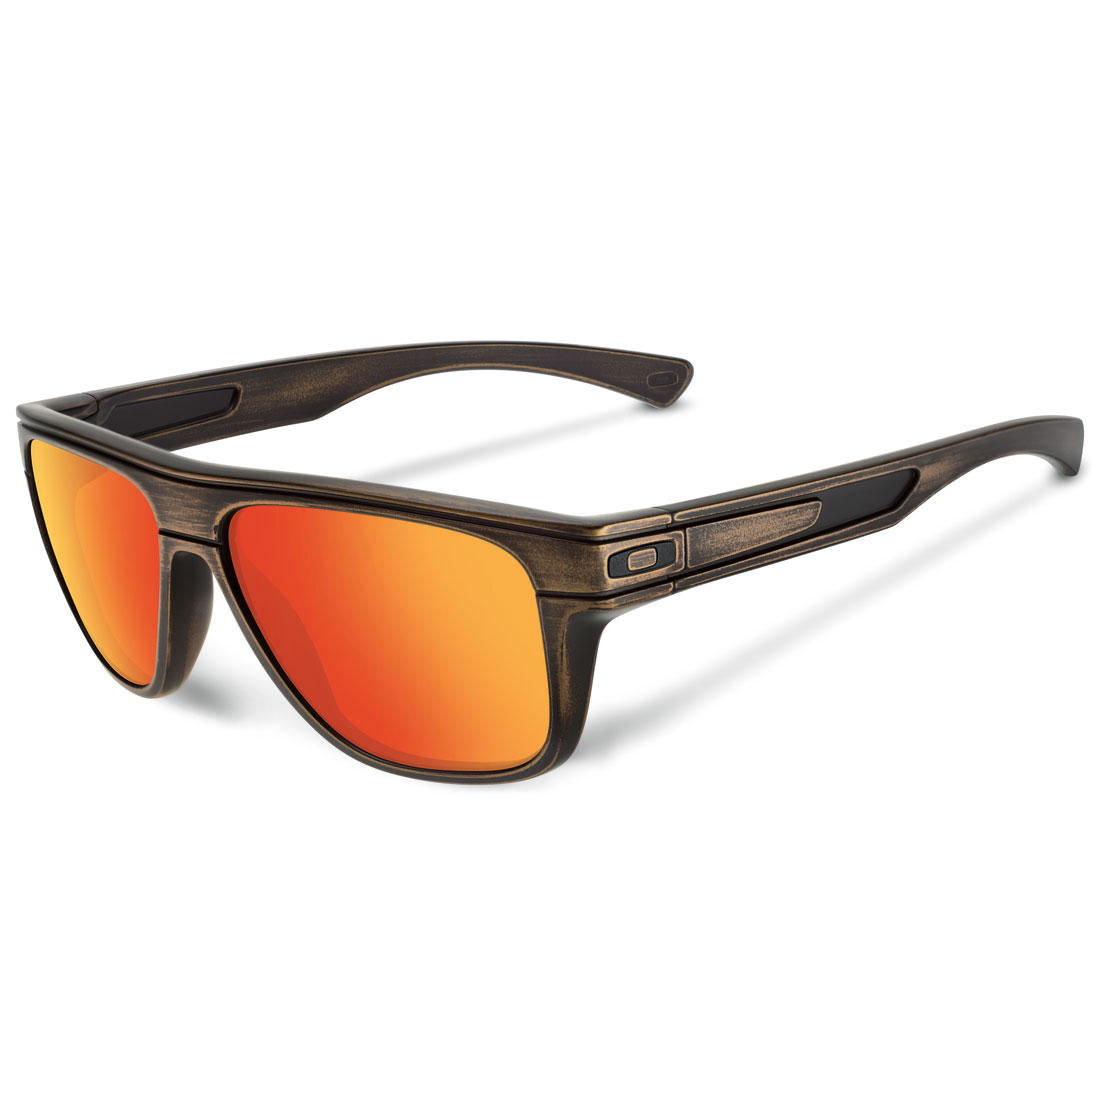 3f6324e394 Oakley Sunglasses